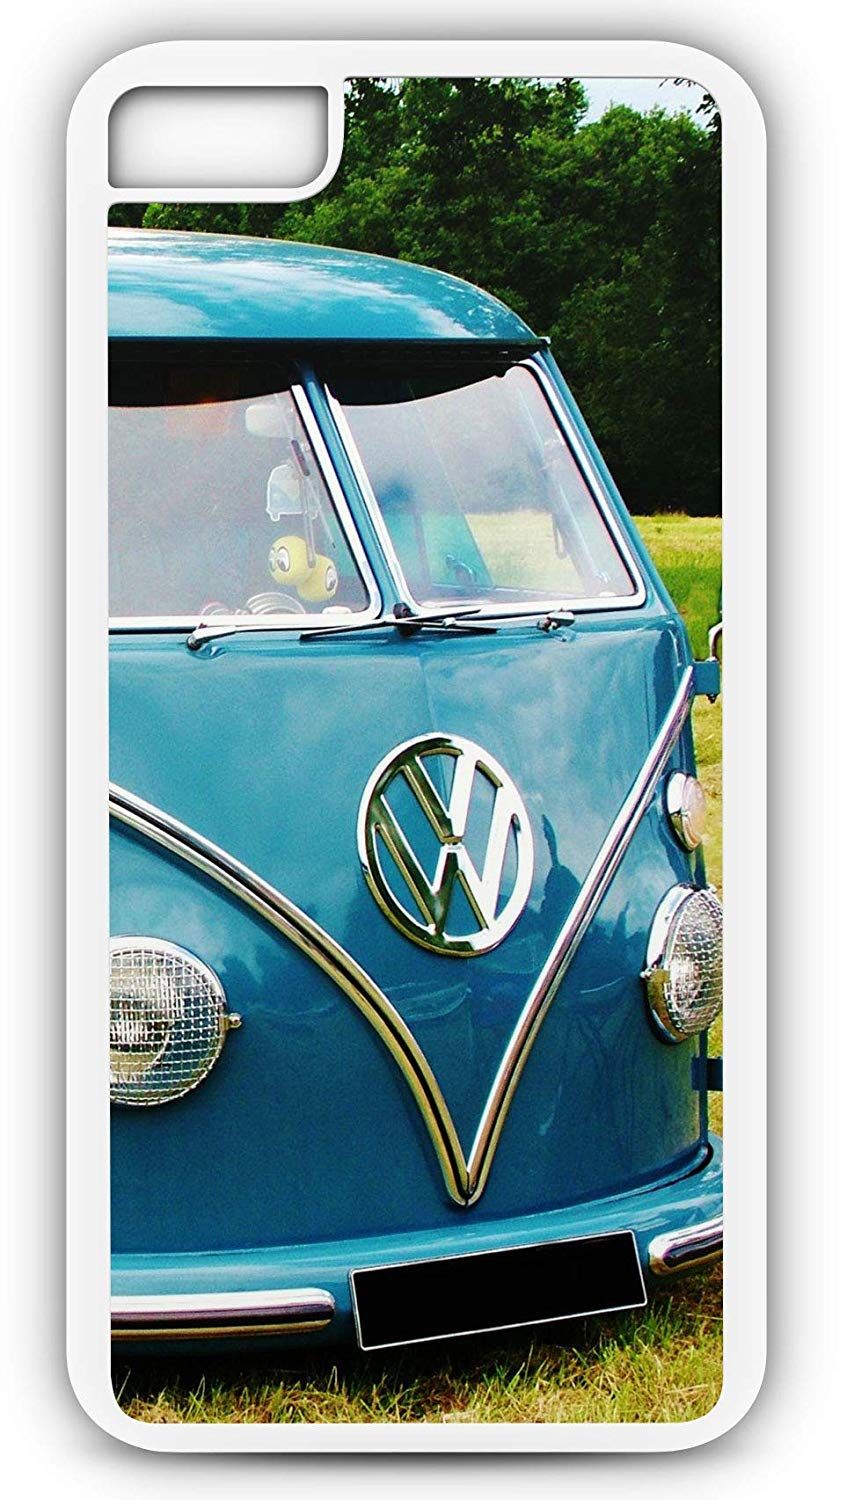 iPhone 8 Case Fits iPhone 8 or iPhone 7 Classic Blue VW Bus Van Antique Volkswagen 1600 cc 20173 White Rubber by TYD Designs